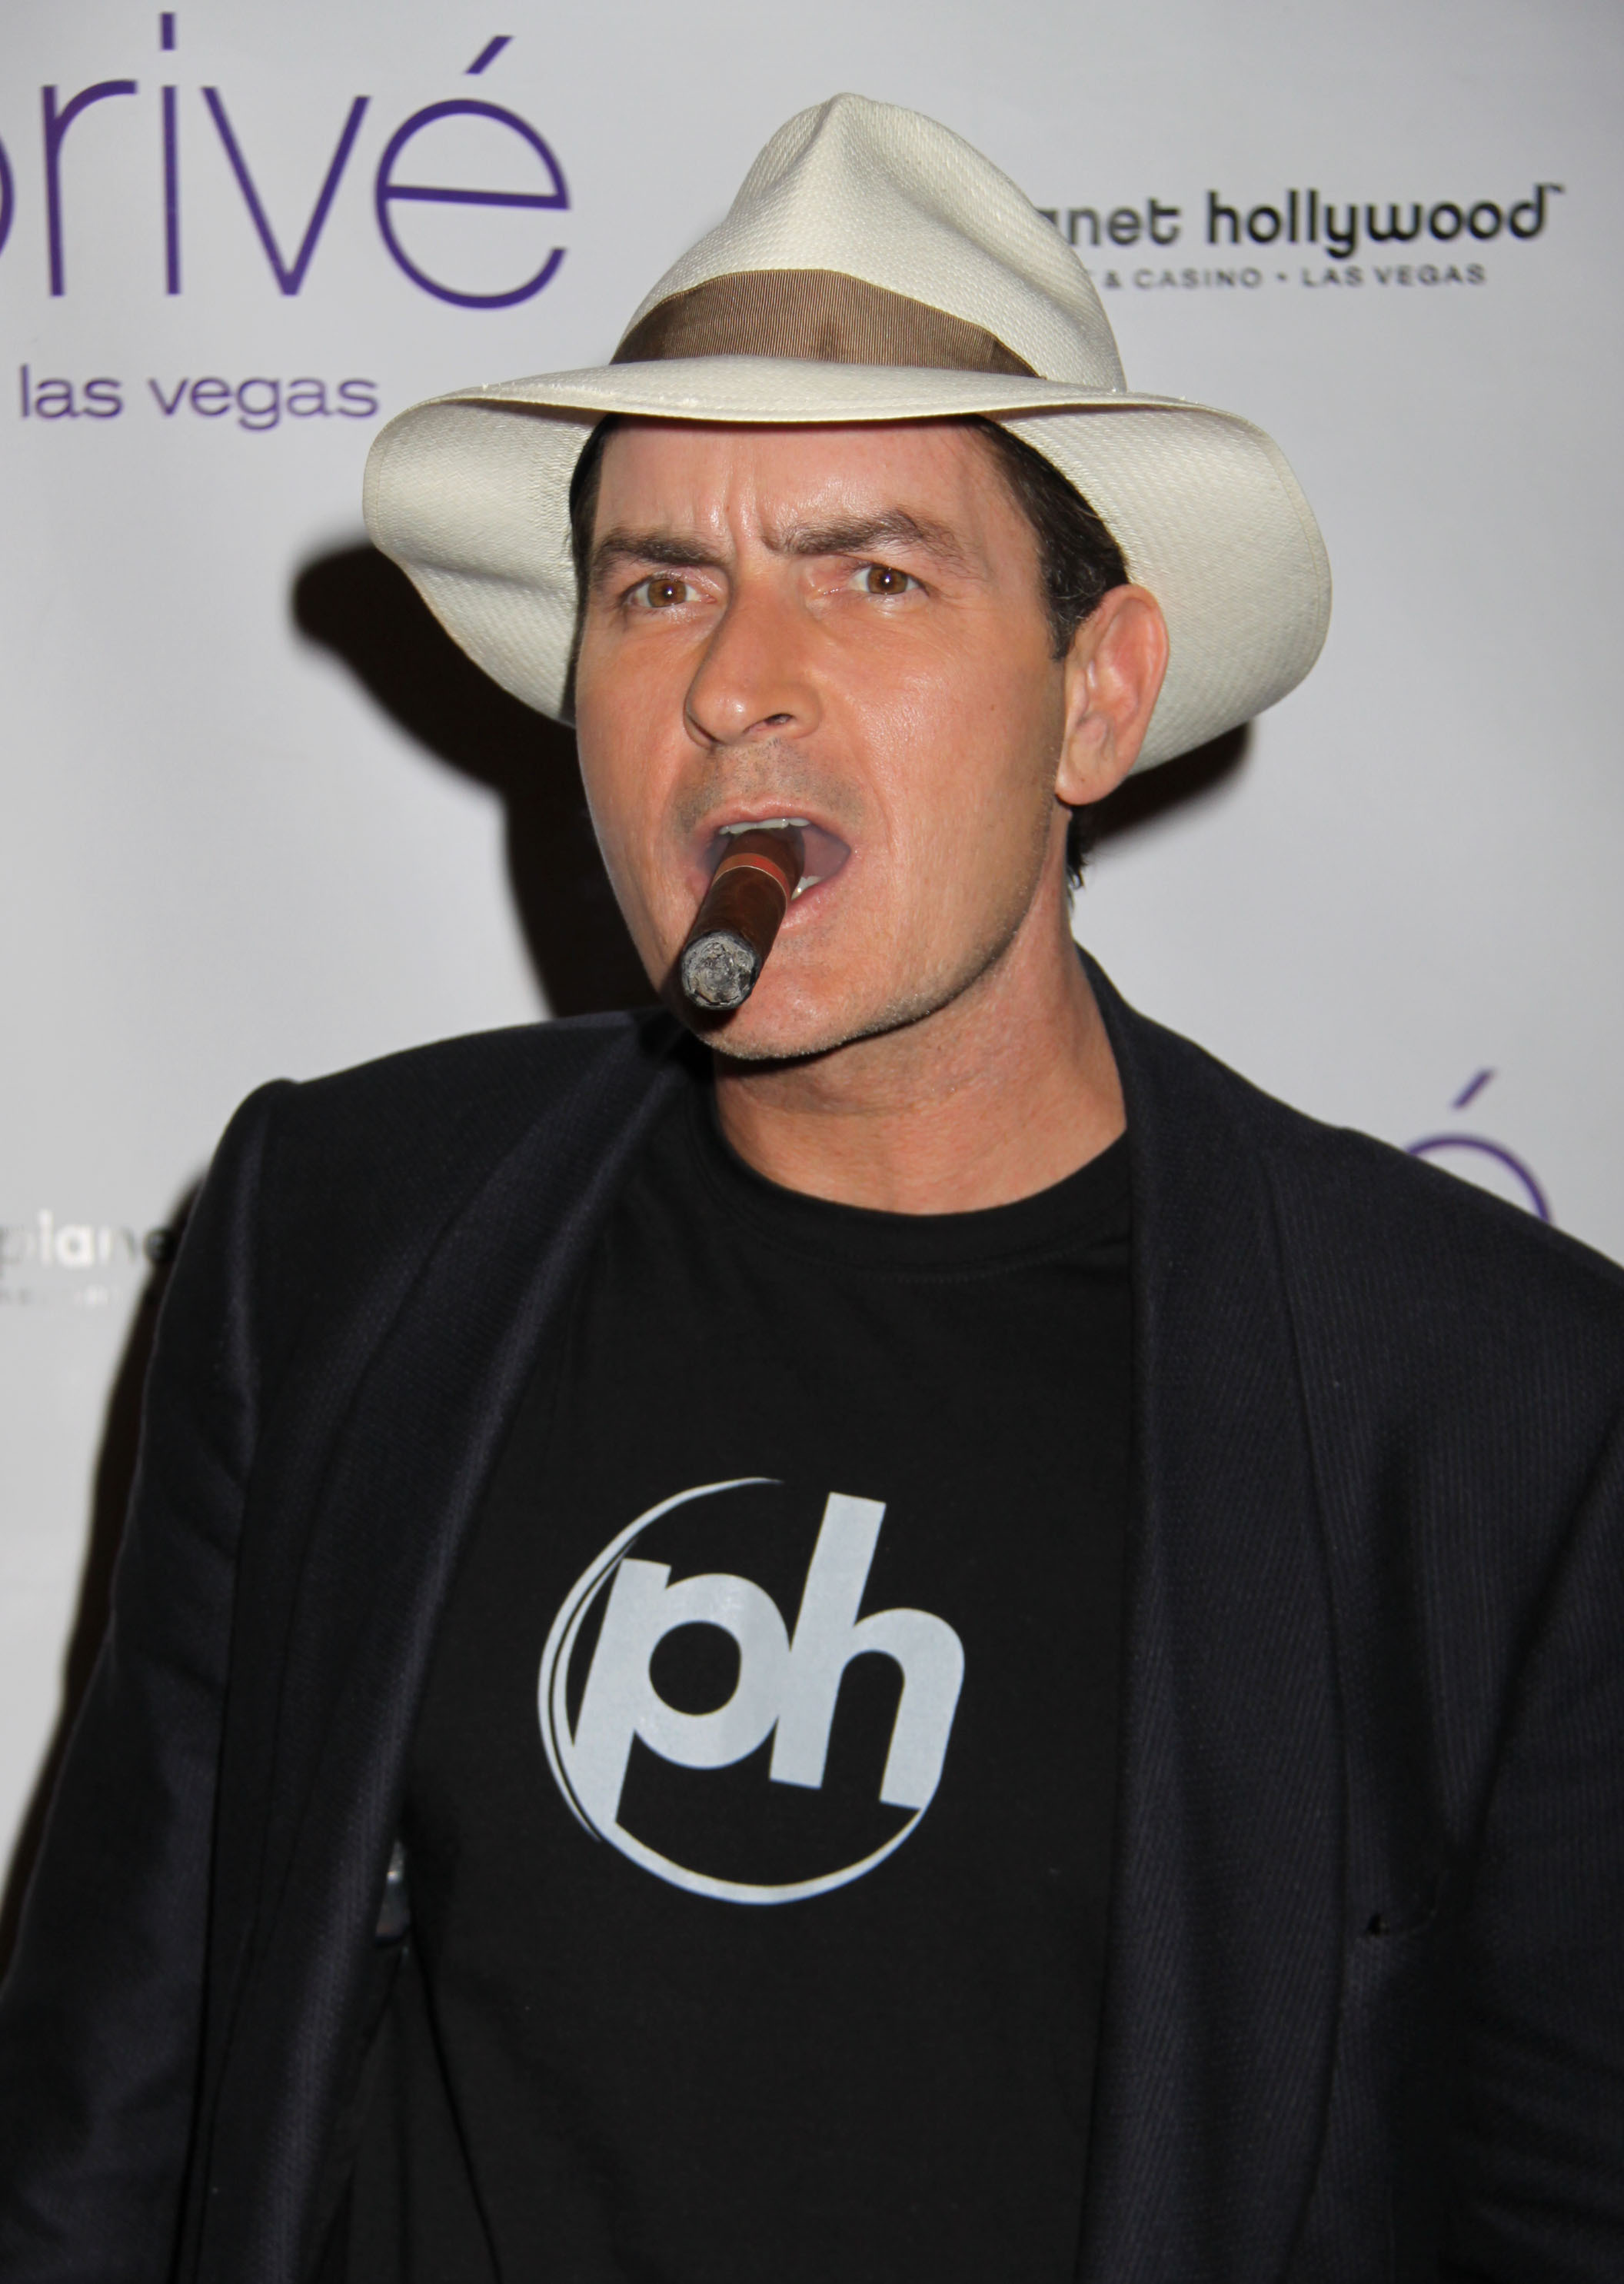 Charlie Sheen hosts an Evening at 'Prive' held at Planet Hollywood Resort and Casino. Las Vegas,  Featuring: Charlie Sheen Where: Nevada, Nevada, United States When: 25 Oct 2008 Credit: Chris Connor / WENN